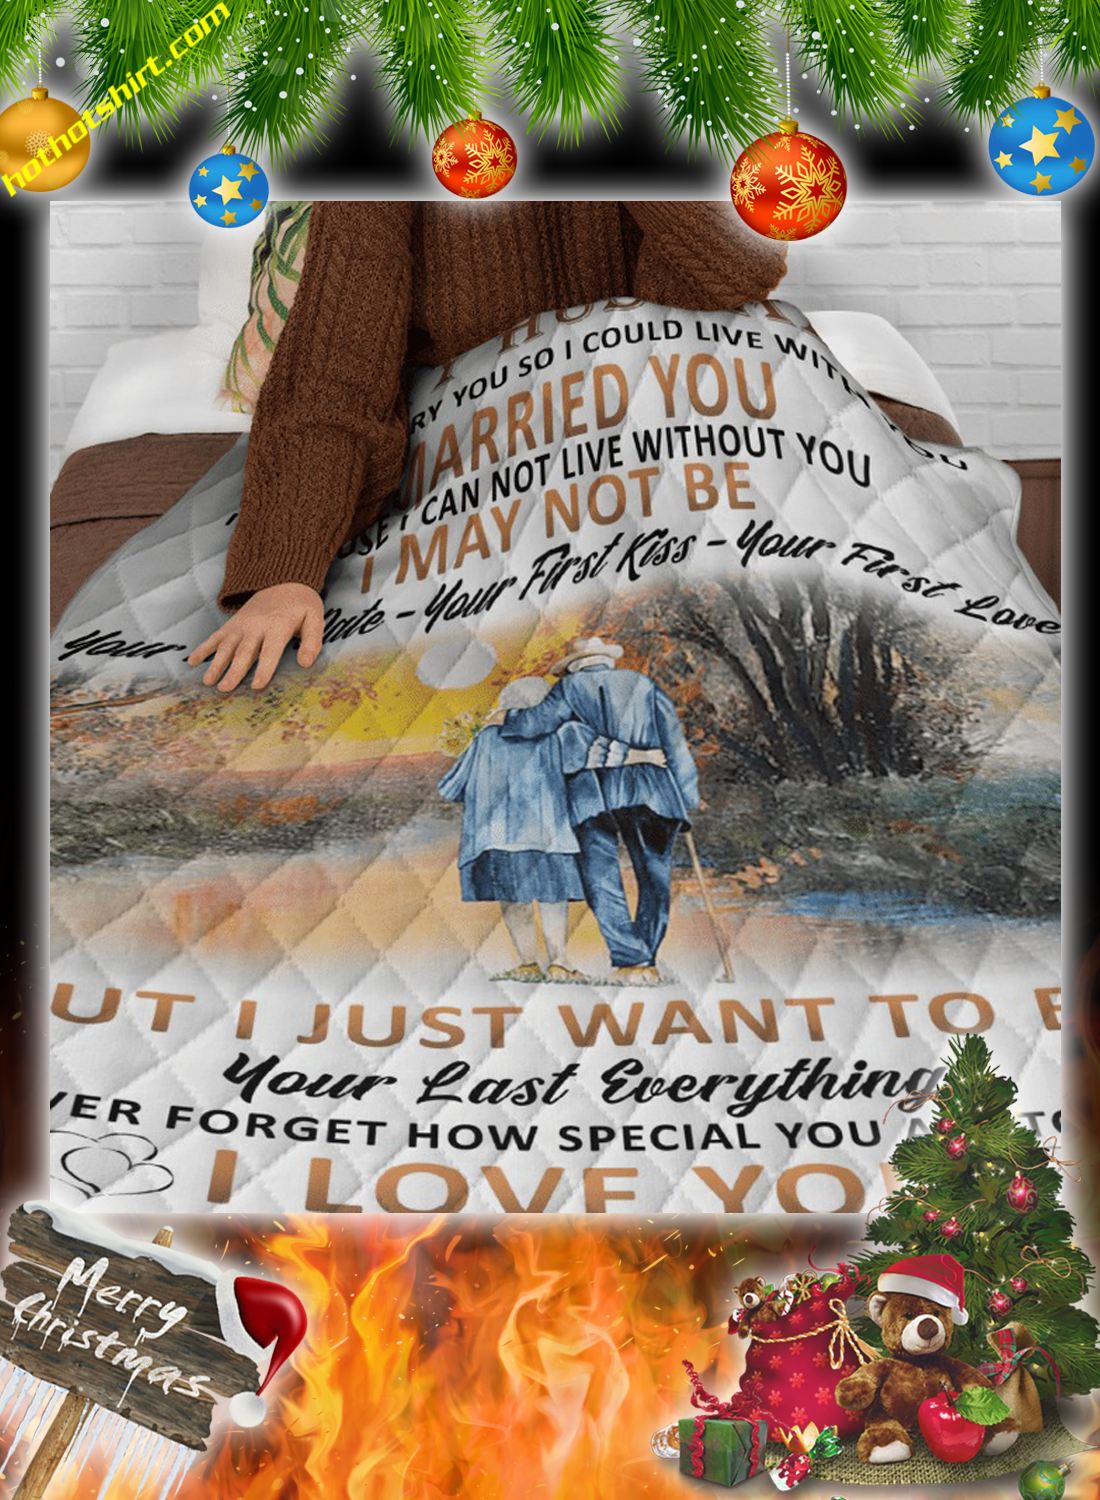 To my husband i didn't marry you so i could live with you your wife quilt 3